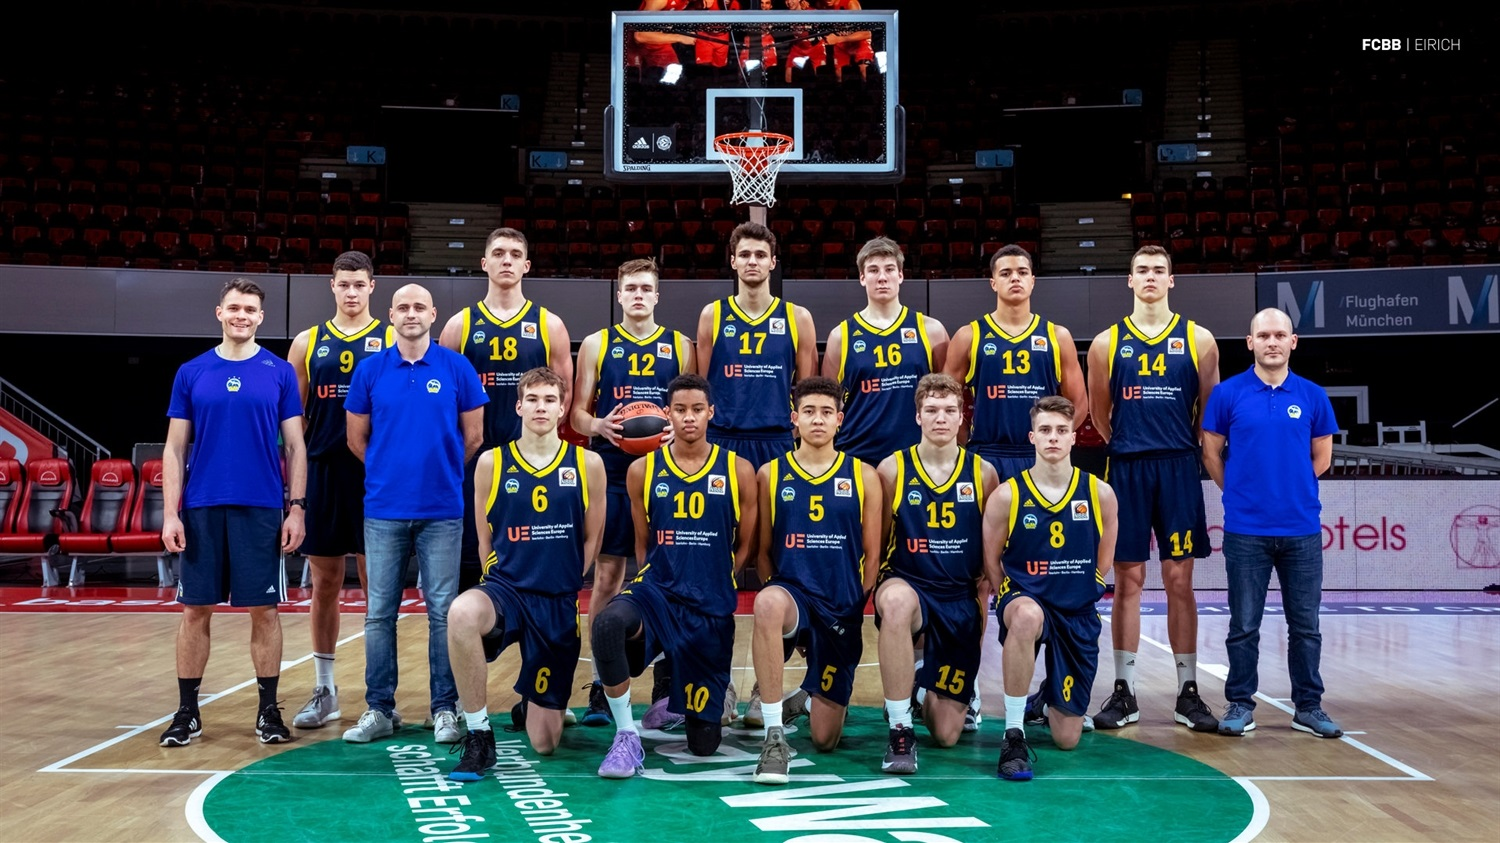 U18 ALBA Berlin - ANGT Munich 2019 (photo FCBB - Eirich) JT18